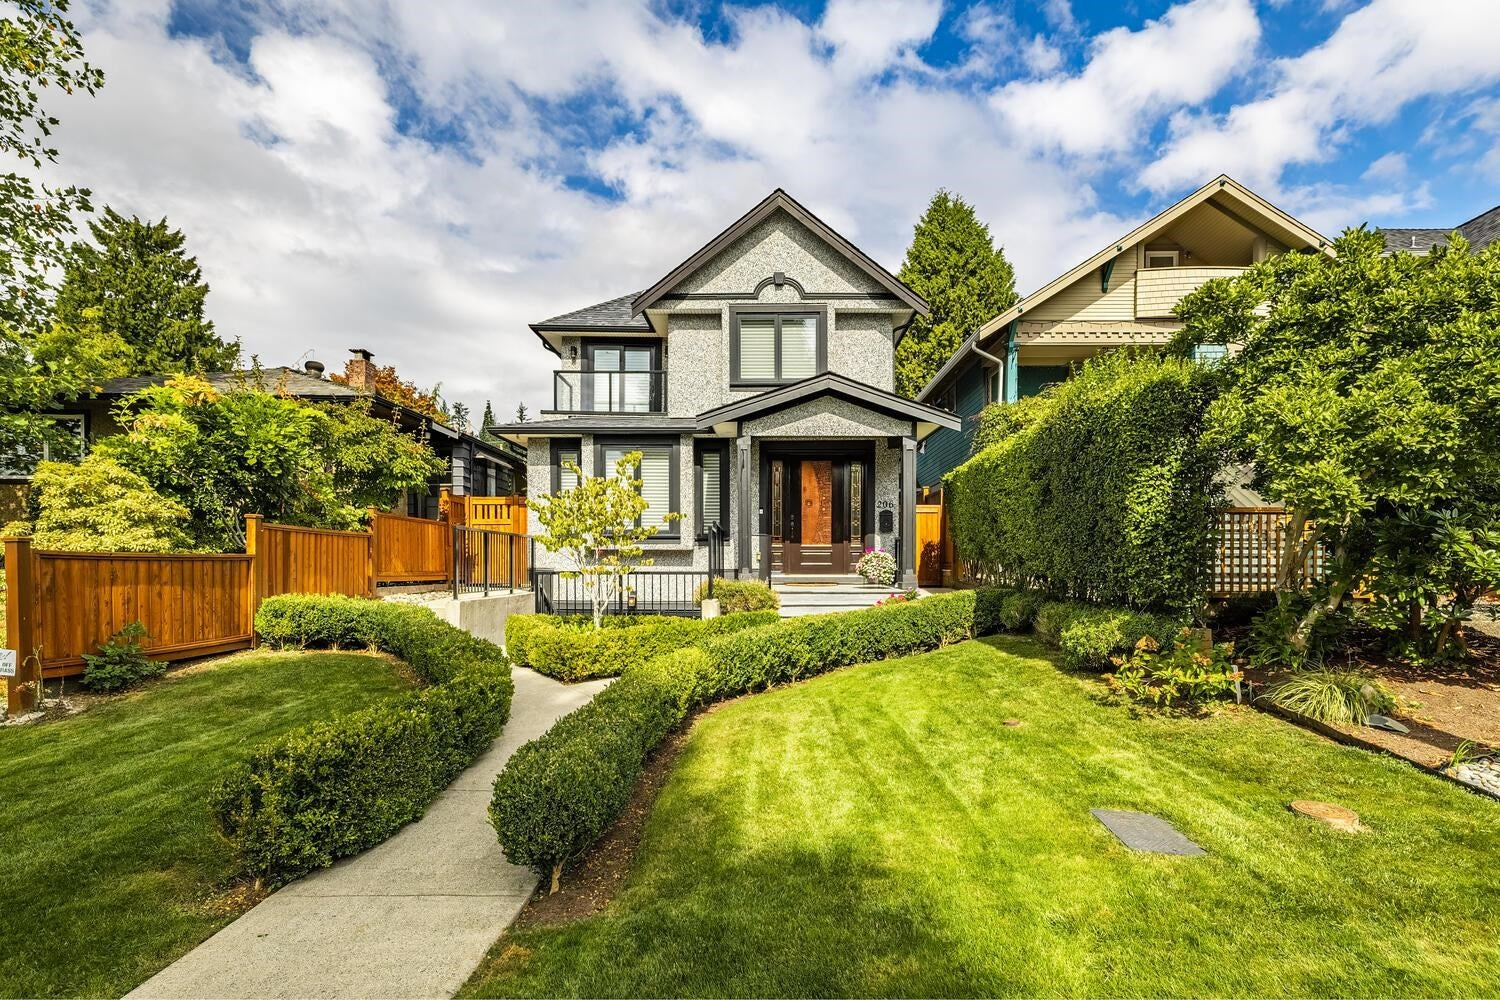 206 E 27TH STREET - Upper Lonsdale House/Single Family for sale, 6 Bedrooms (R2617760) - #1